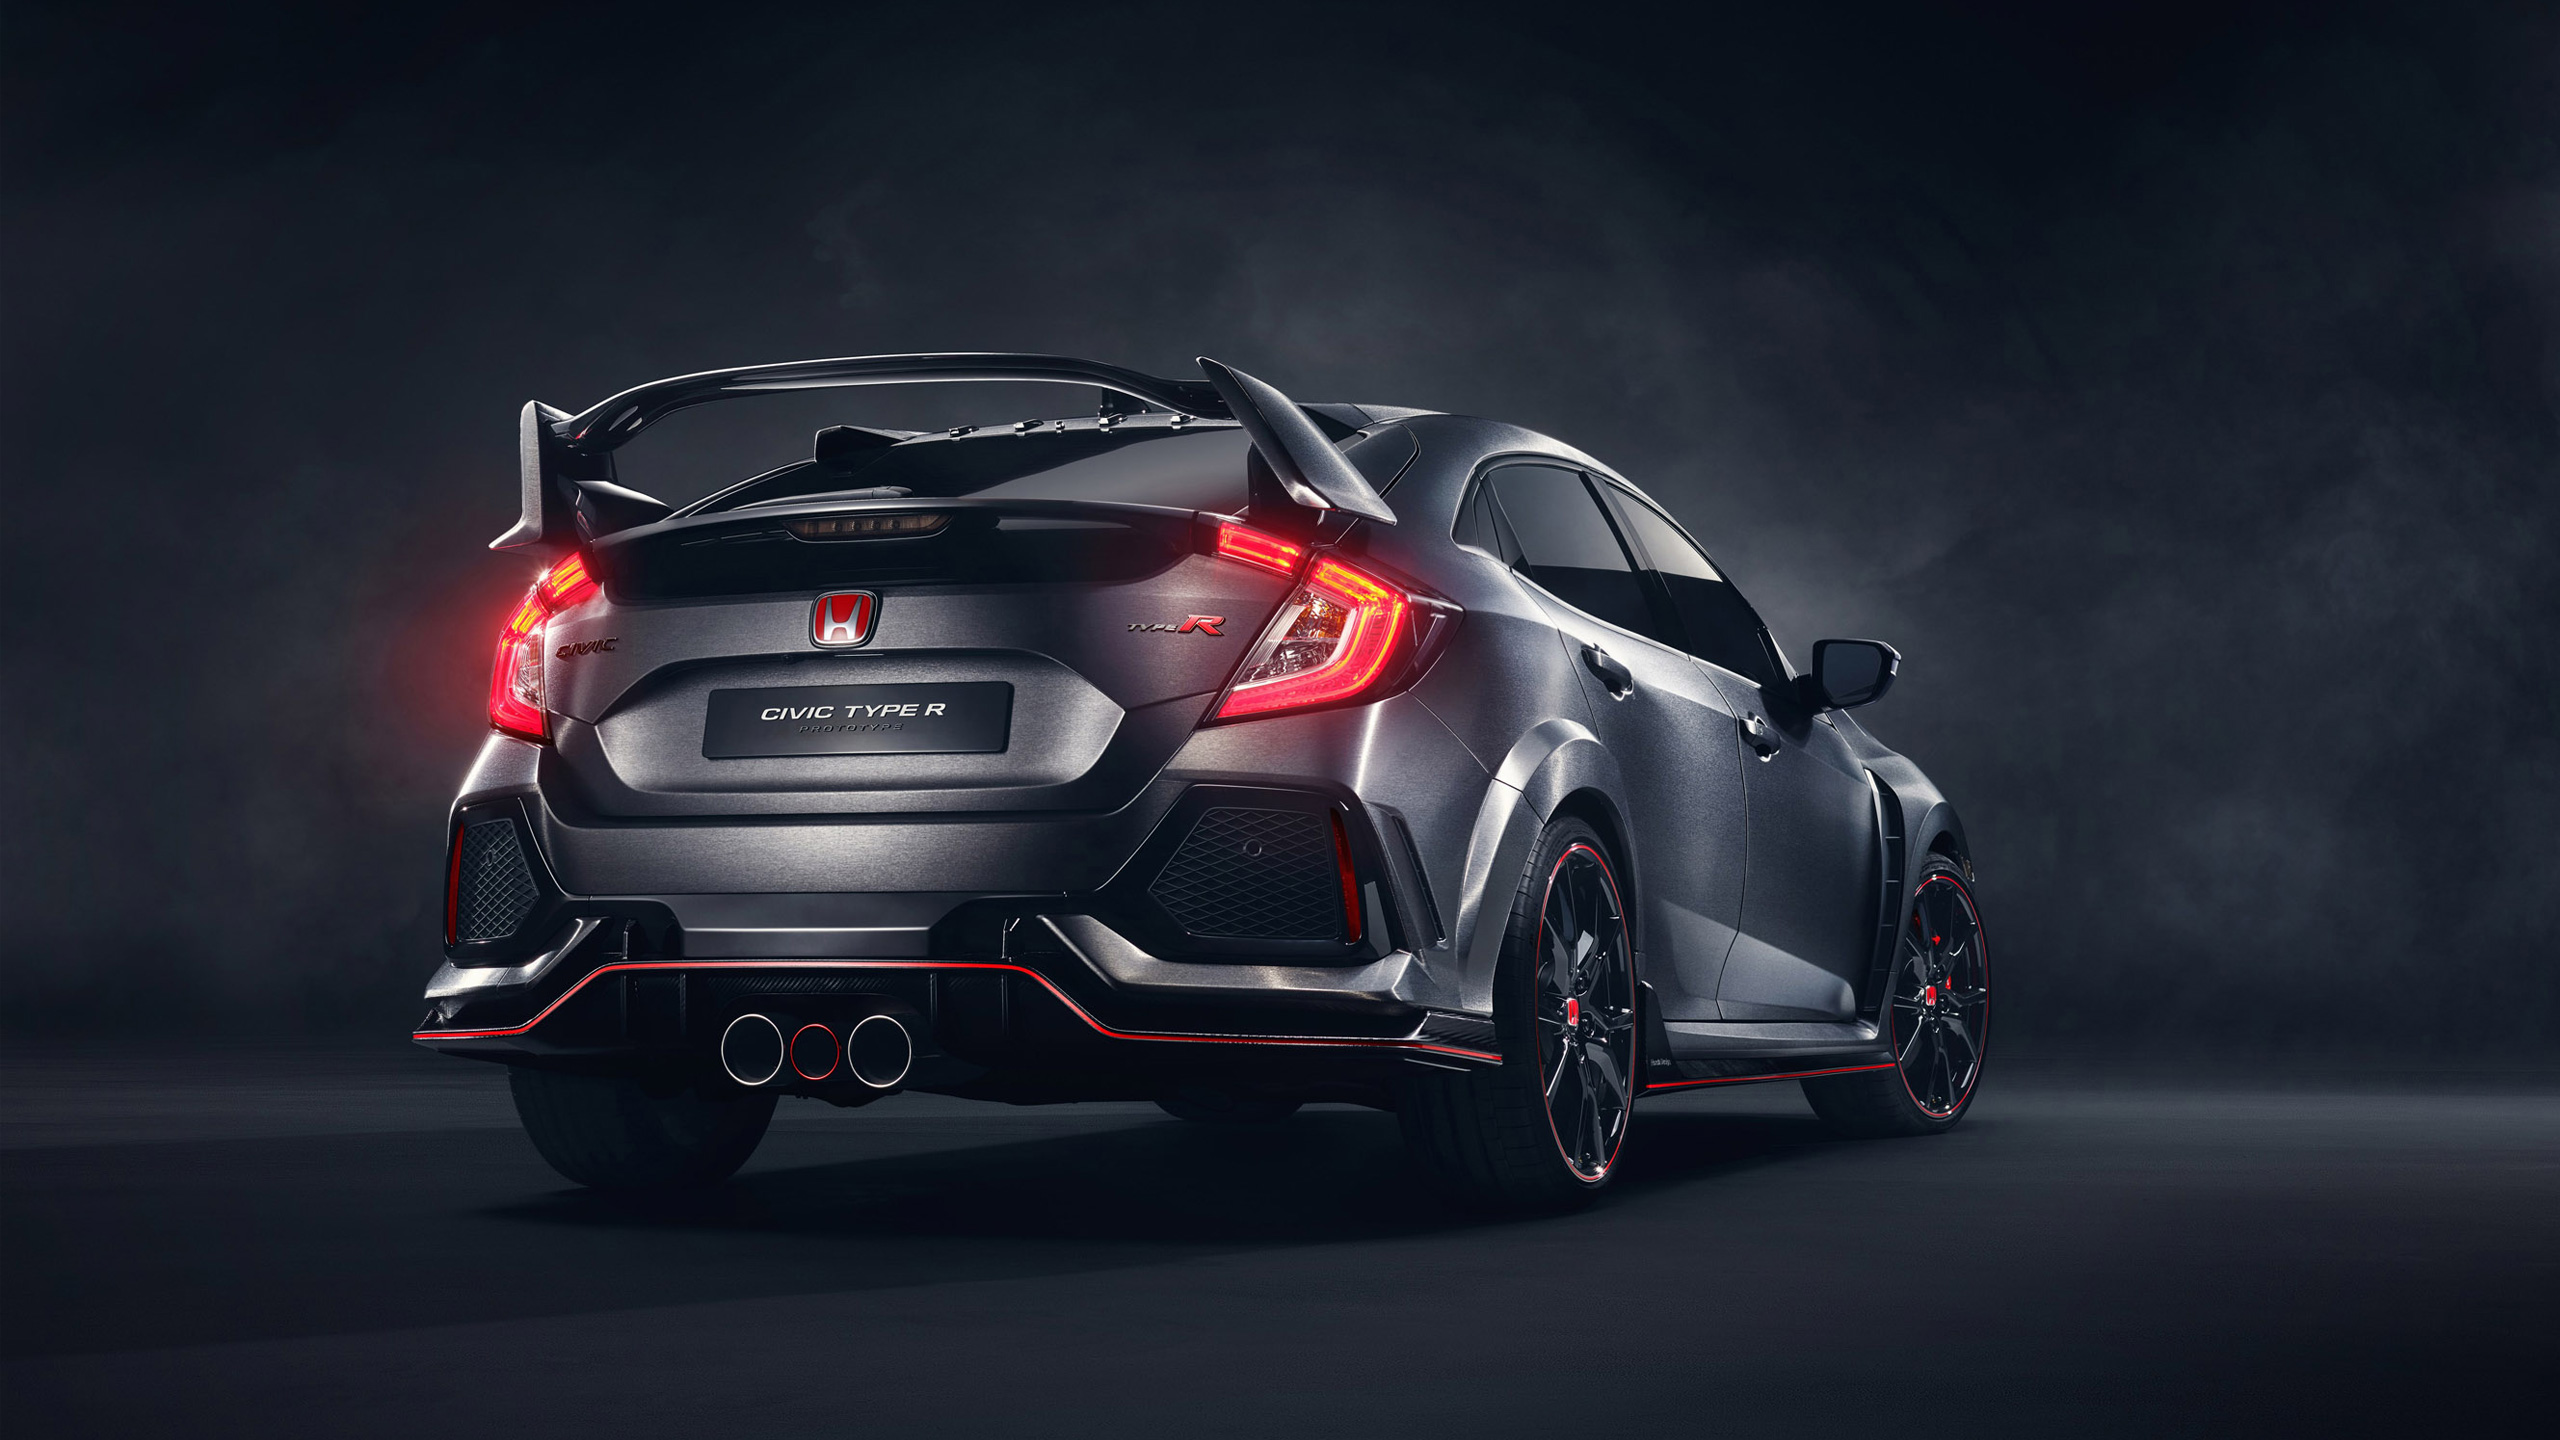 2017 Honda Civic Type R 3 Wallpaper Hd Car Wallpapers Id 7021